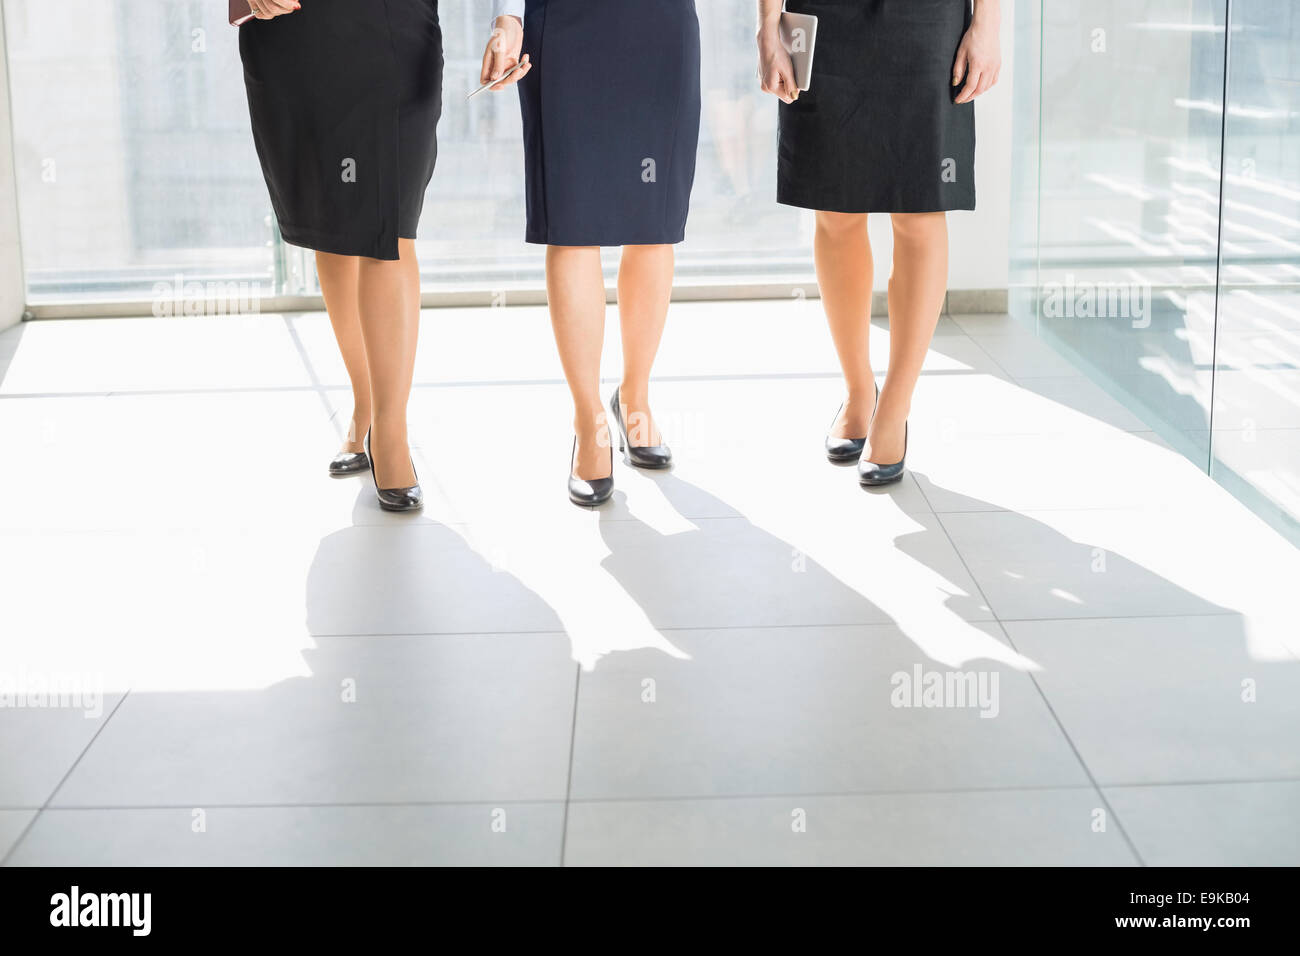 Low section of businesswomen standing on tiled floor in office - Stock Image